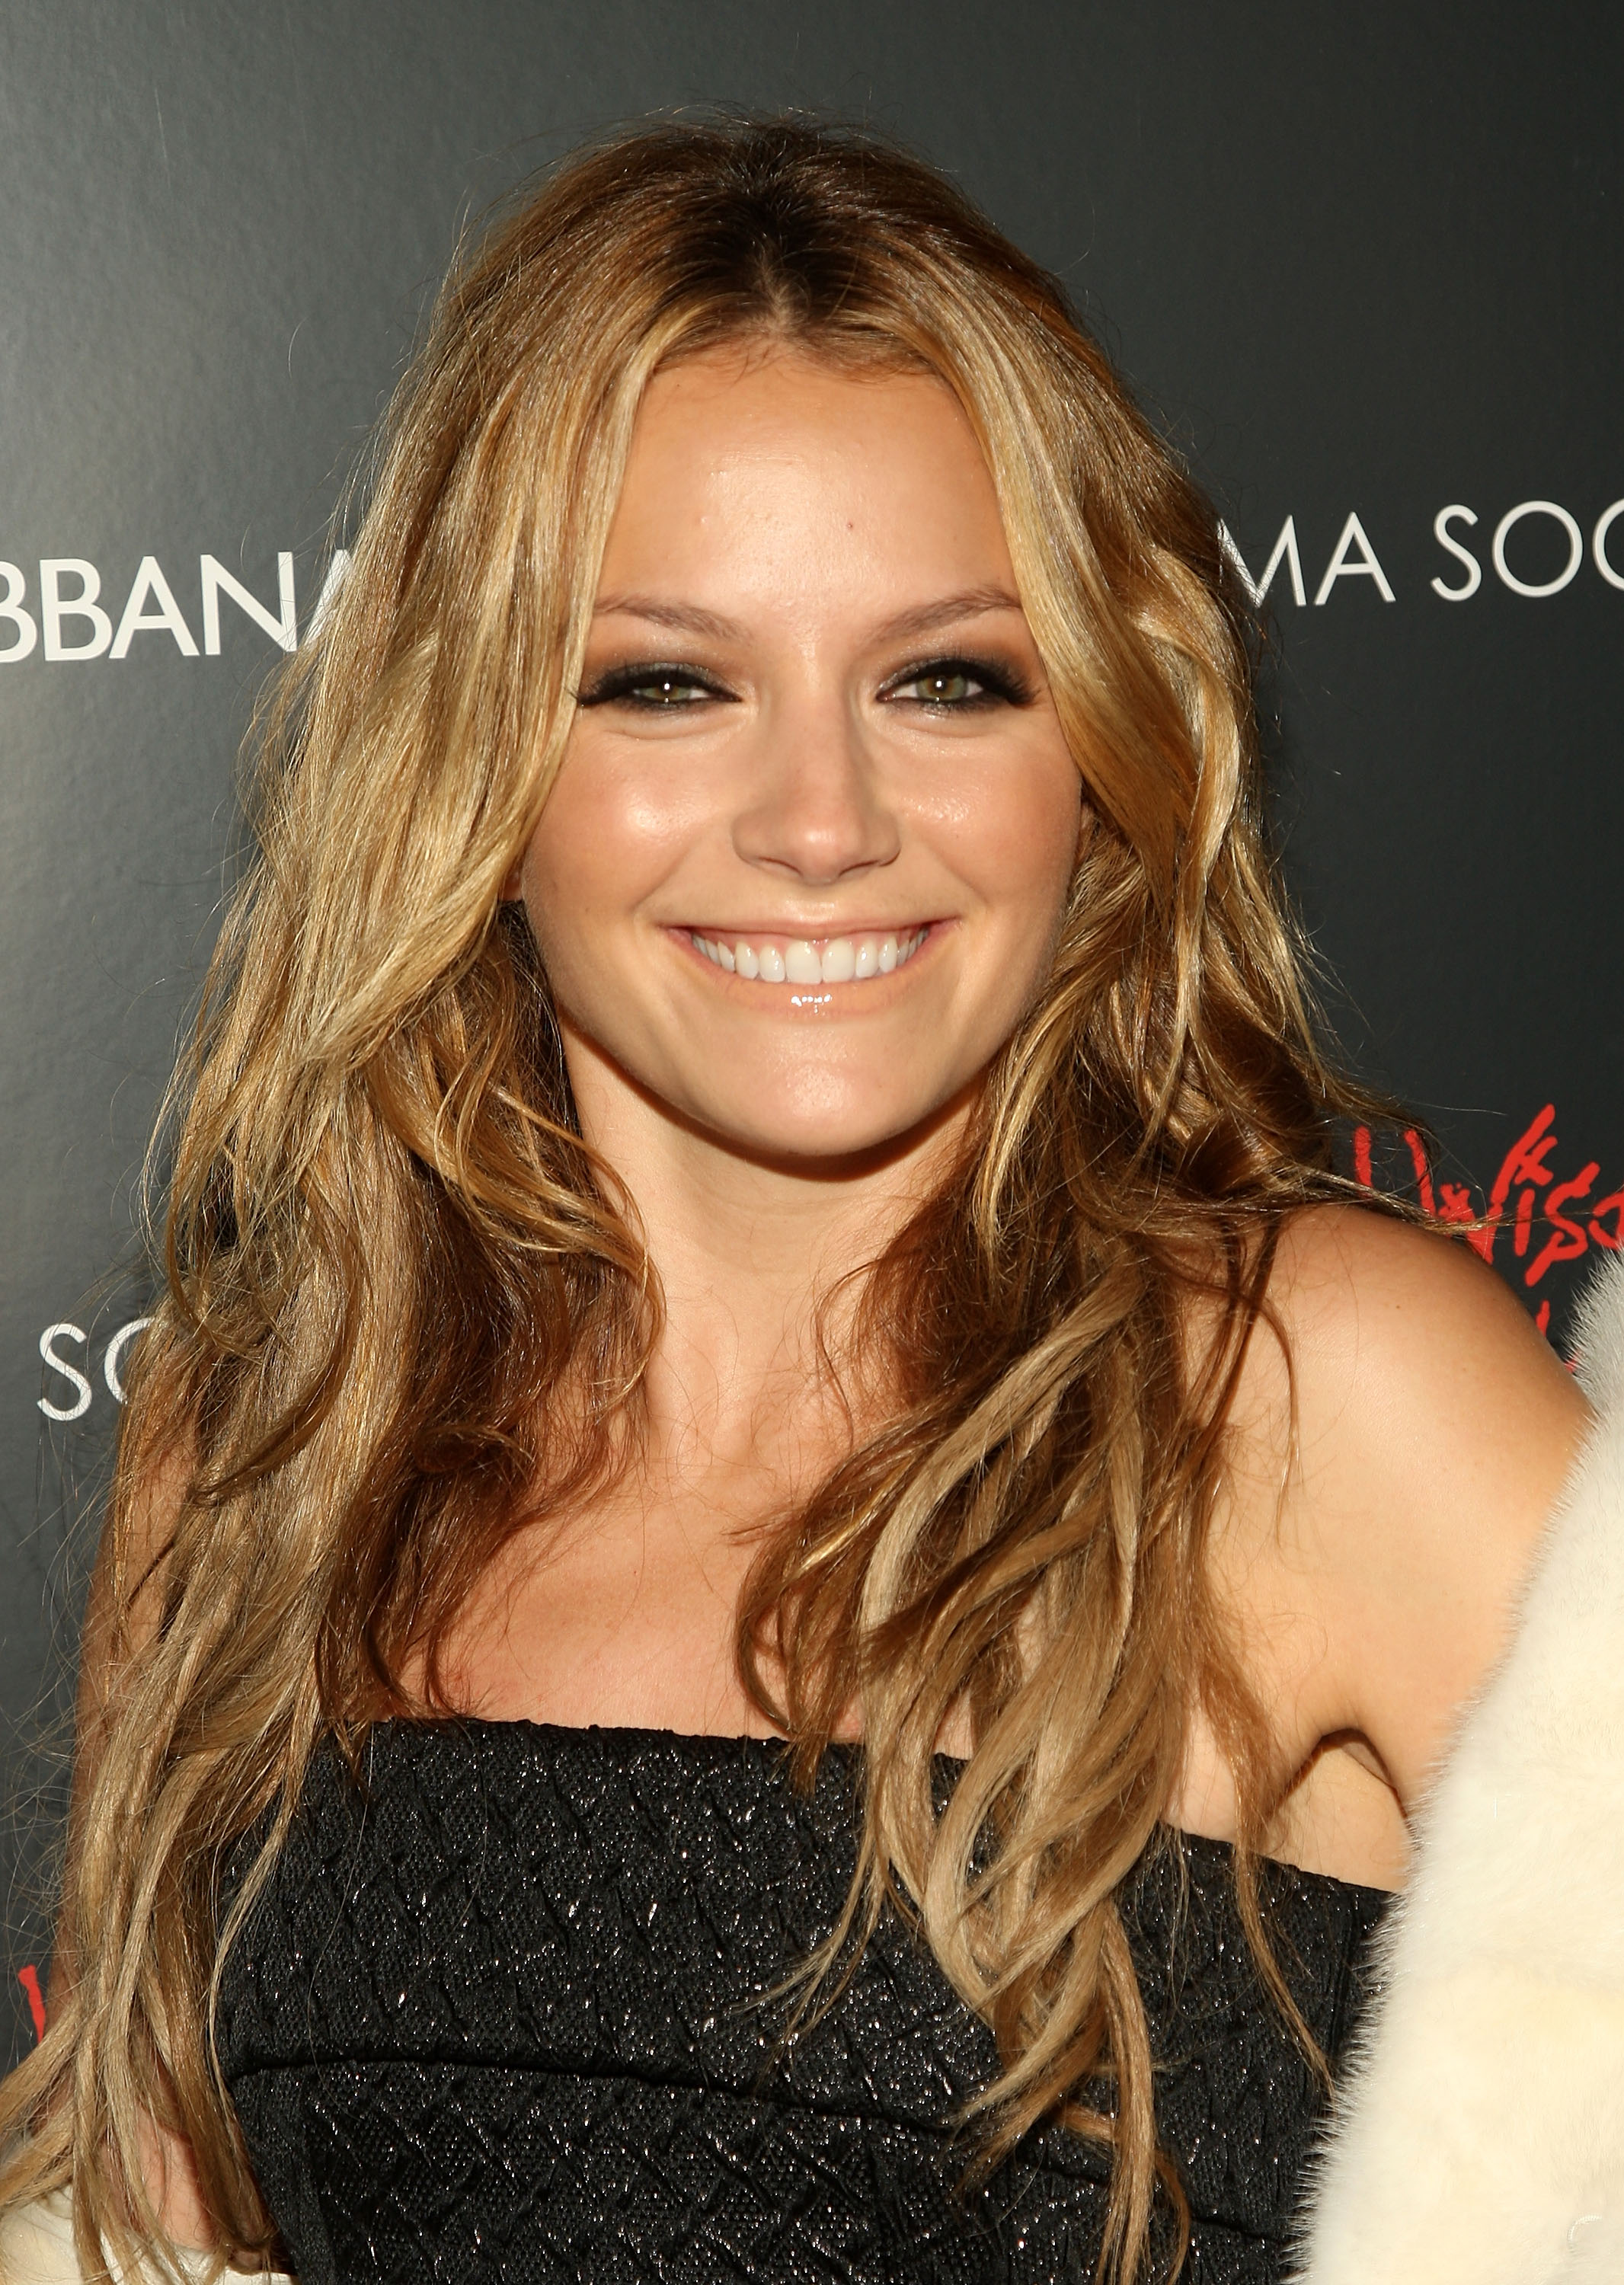 becki newton imdbbecki newton milkshake, becki newton instagram, becki newton ugly betty, becki newton twitter, becki newton height weight, becki newton, becki newton wikifeet, becki newton charmed, becki newton imdb, becki newton nudography, becki newton husband, becki newton net worth